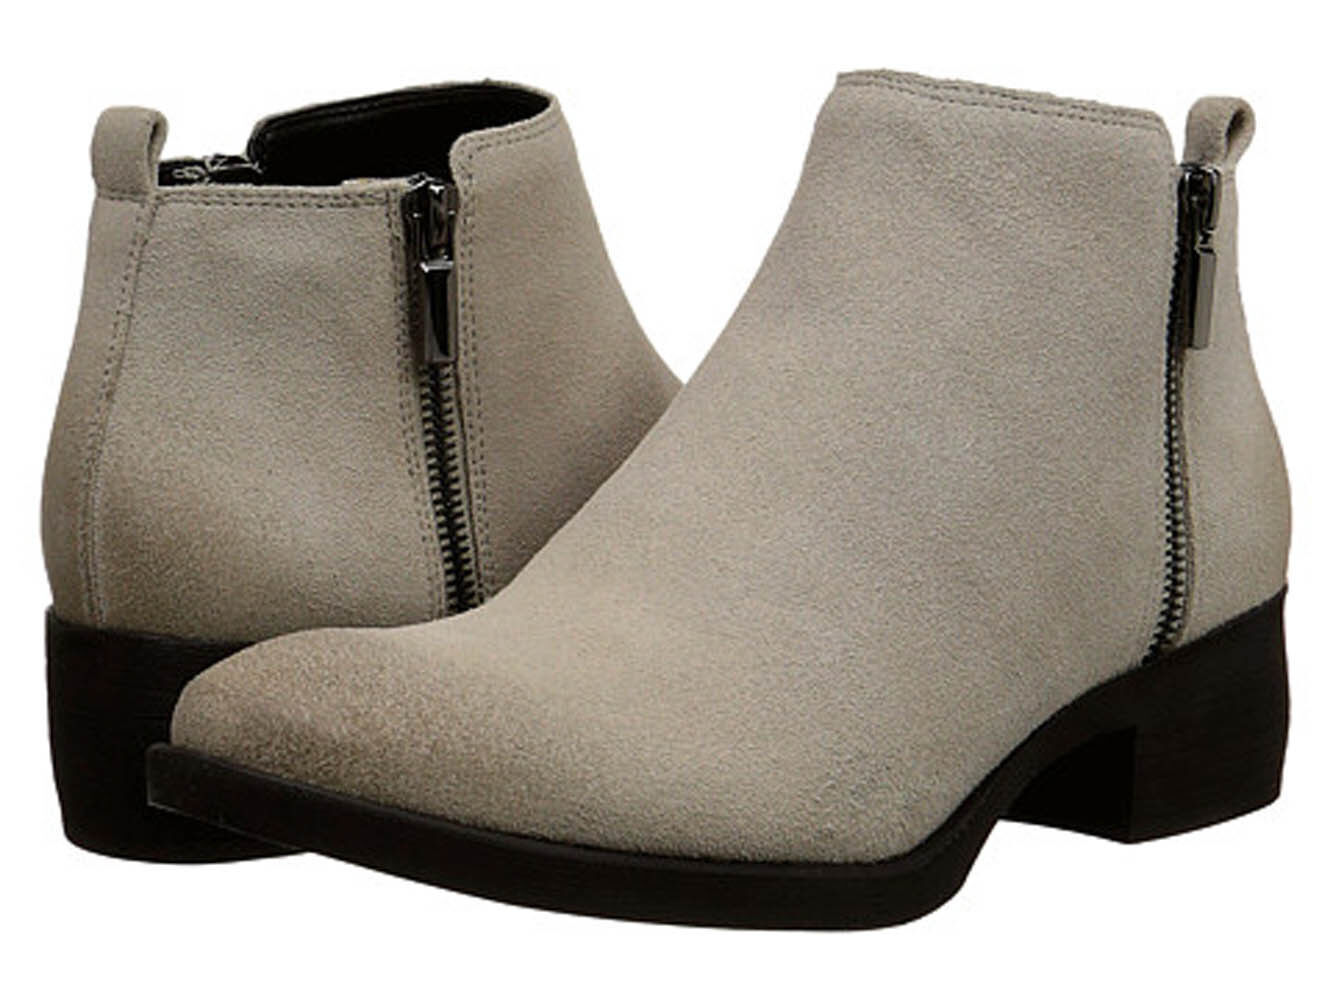 Kenneth Cole New York Women's Levon Chelsea Ankle Booties Cappuccino 6M - NEW